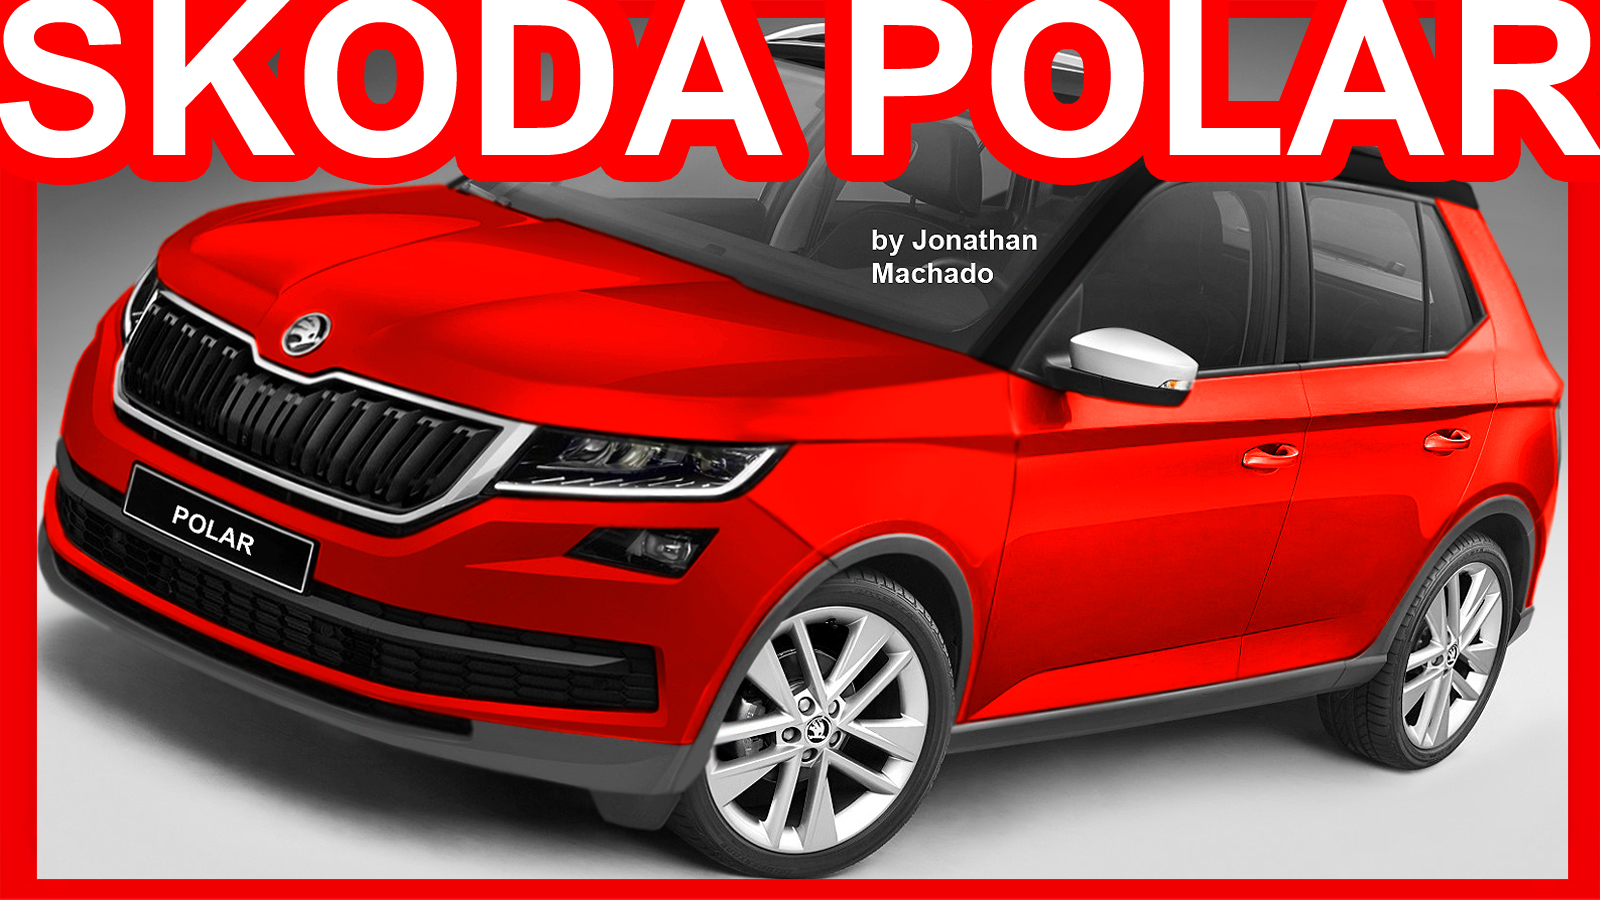 Photoshop New 2018 Skoda Polar Fabia Suv Skoda Carwp